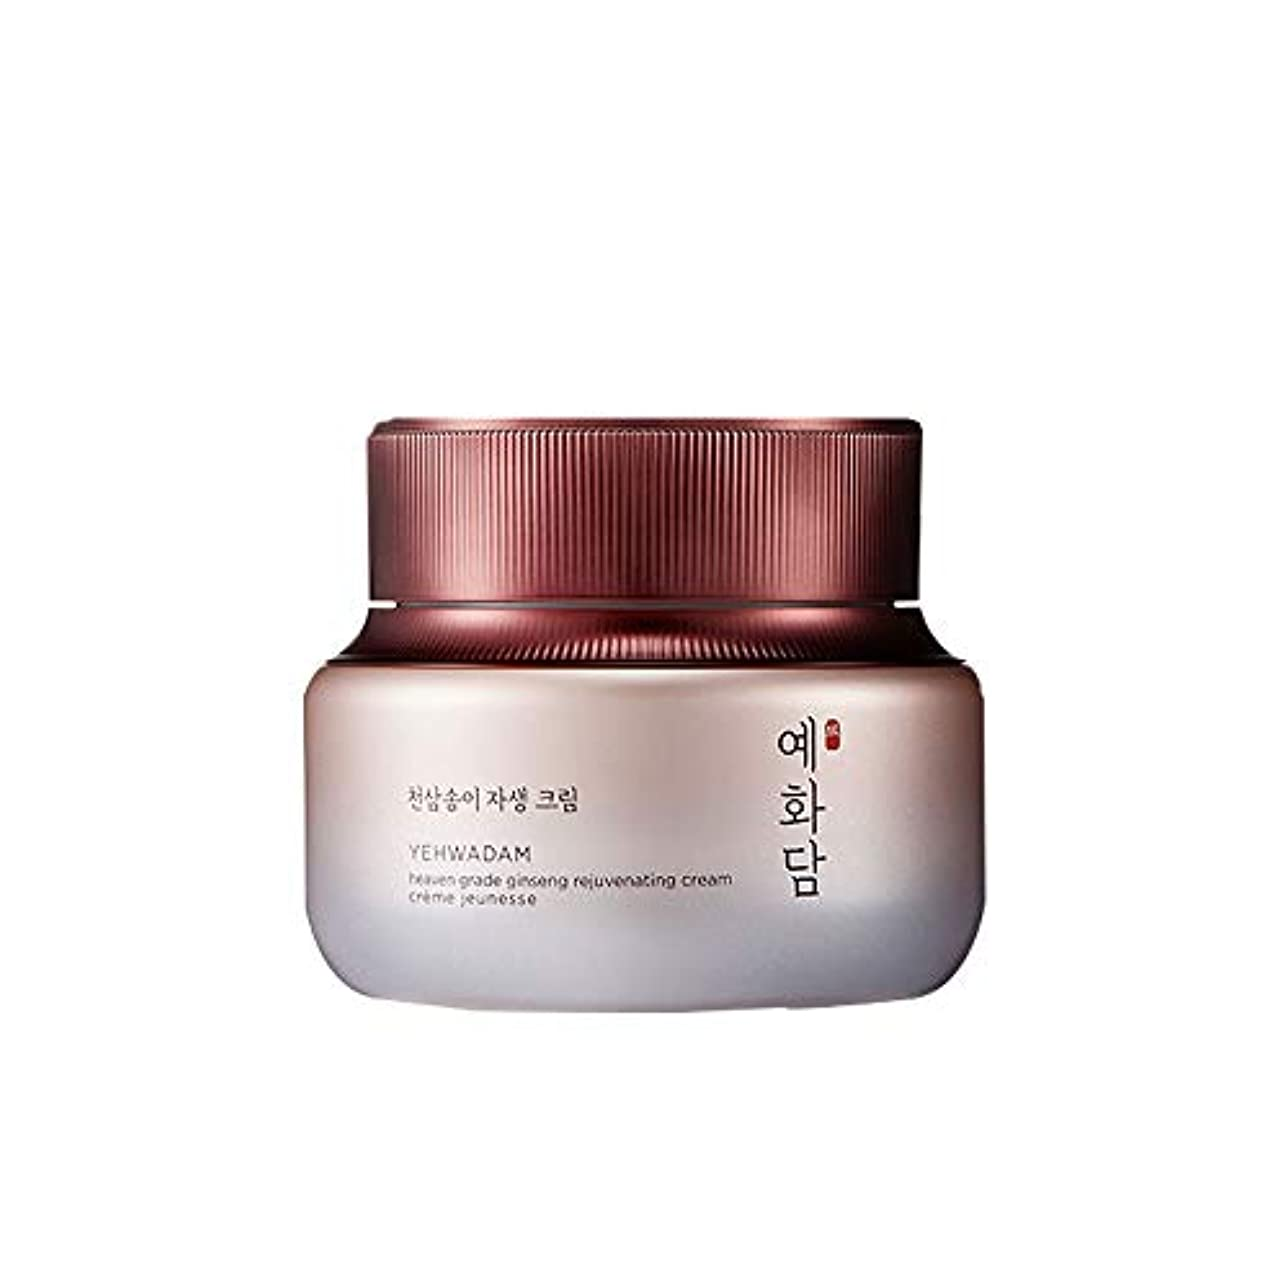 ユーモラス玉終了する[ザフェイスショップ]The Faceshop YEHWADAM天参松栮自生クリーム 50ml The Faceshop YEHWADAM Heaven Grade Ginseng Regenerating Cream...